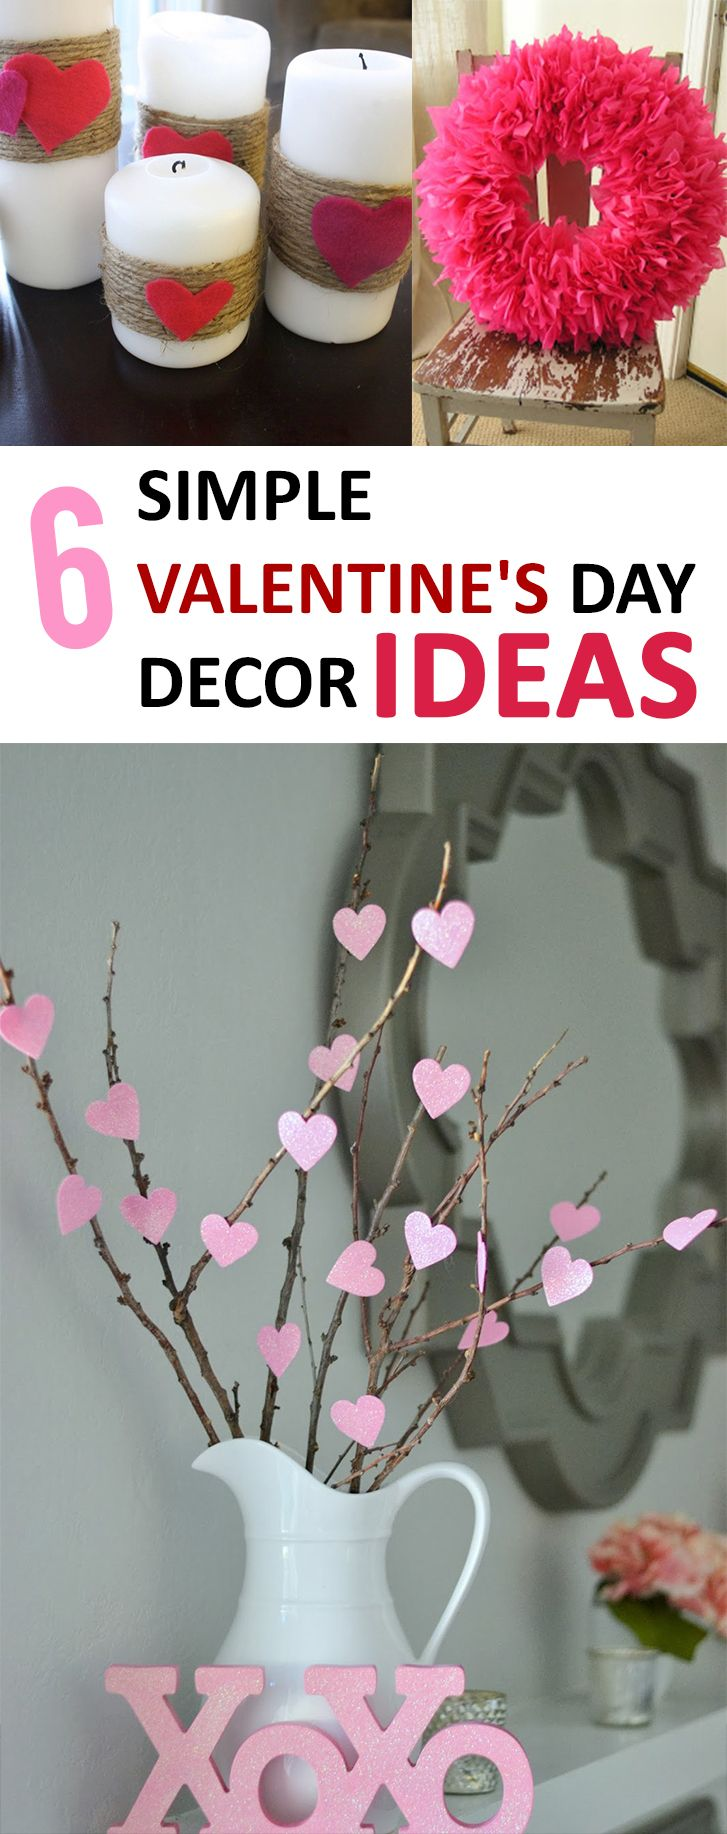 6 simple, and perfect ideas to decorate your home for Valentine's Day!